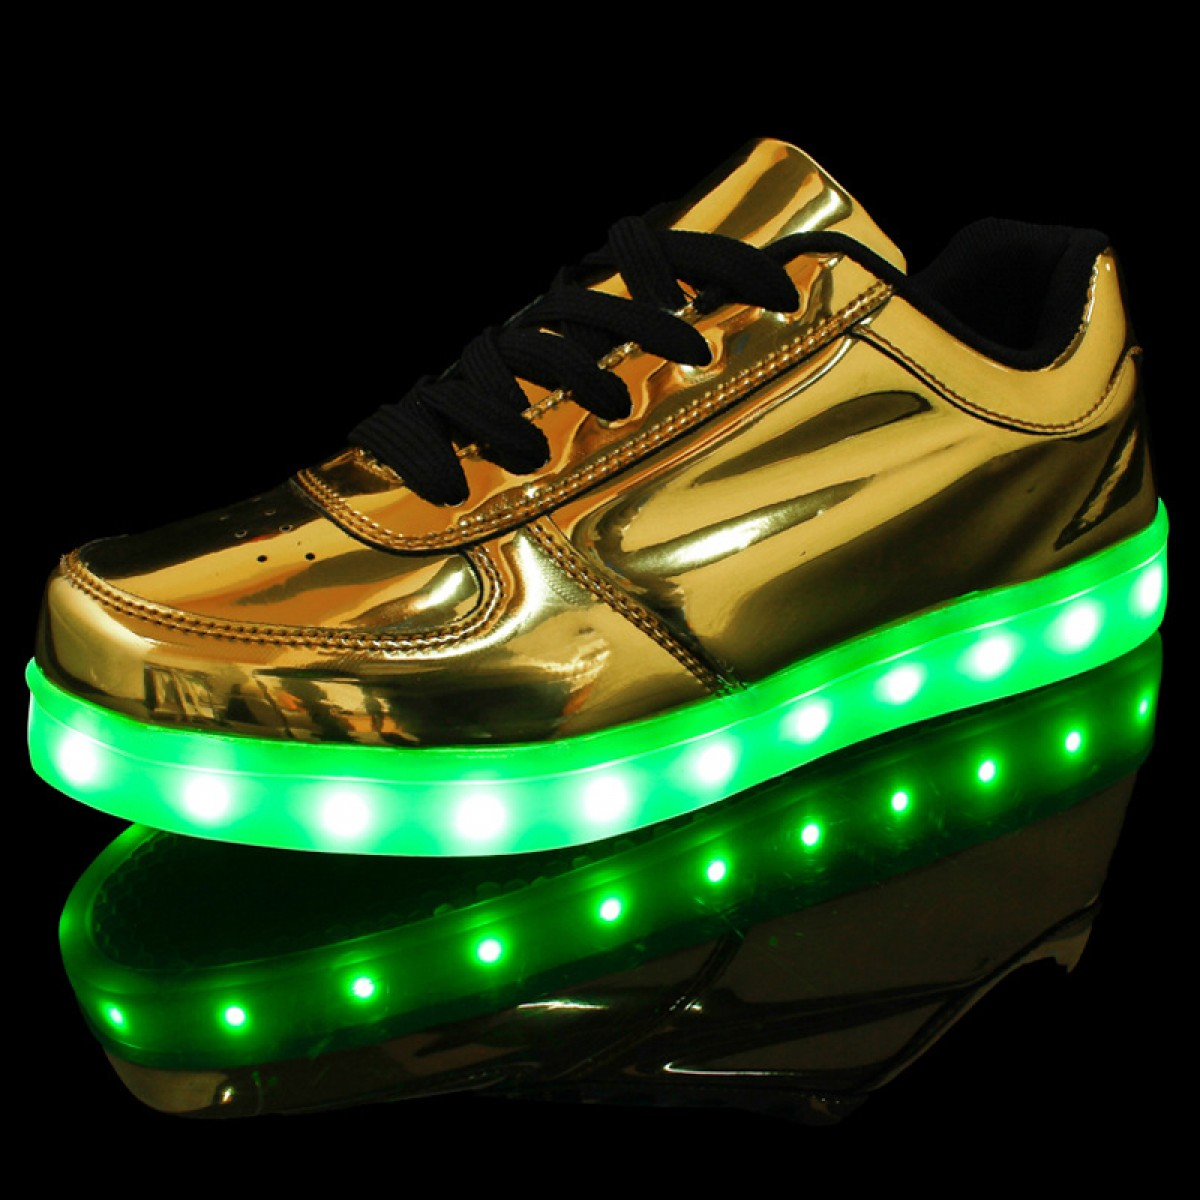 6d8f6b25c5d7 Buy LED Shoes USB Charging Gold  Silver Light Up Shoes Lighting ...